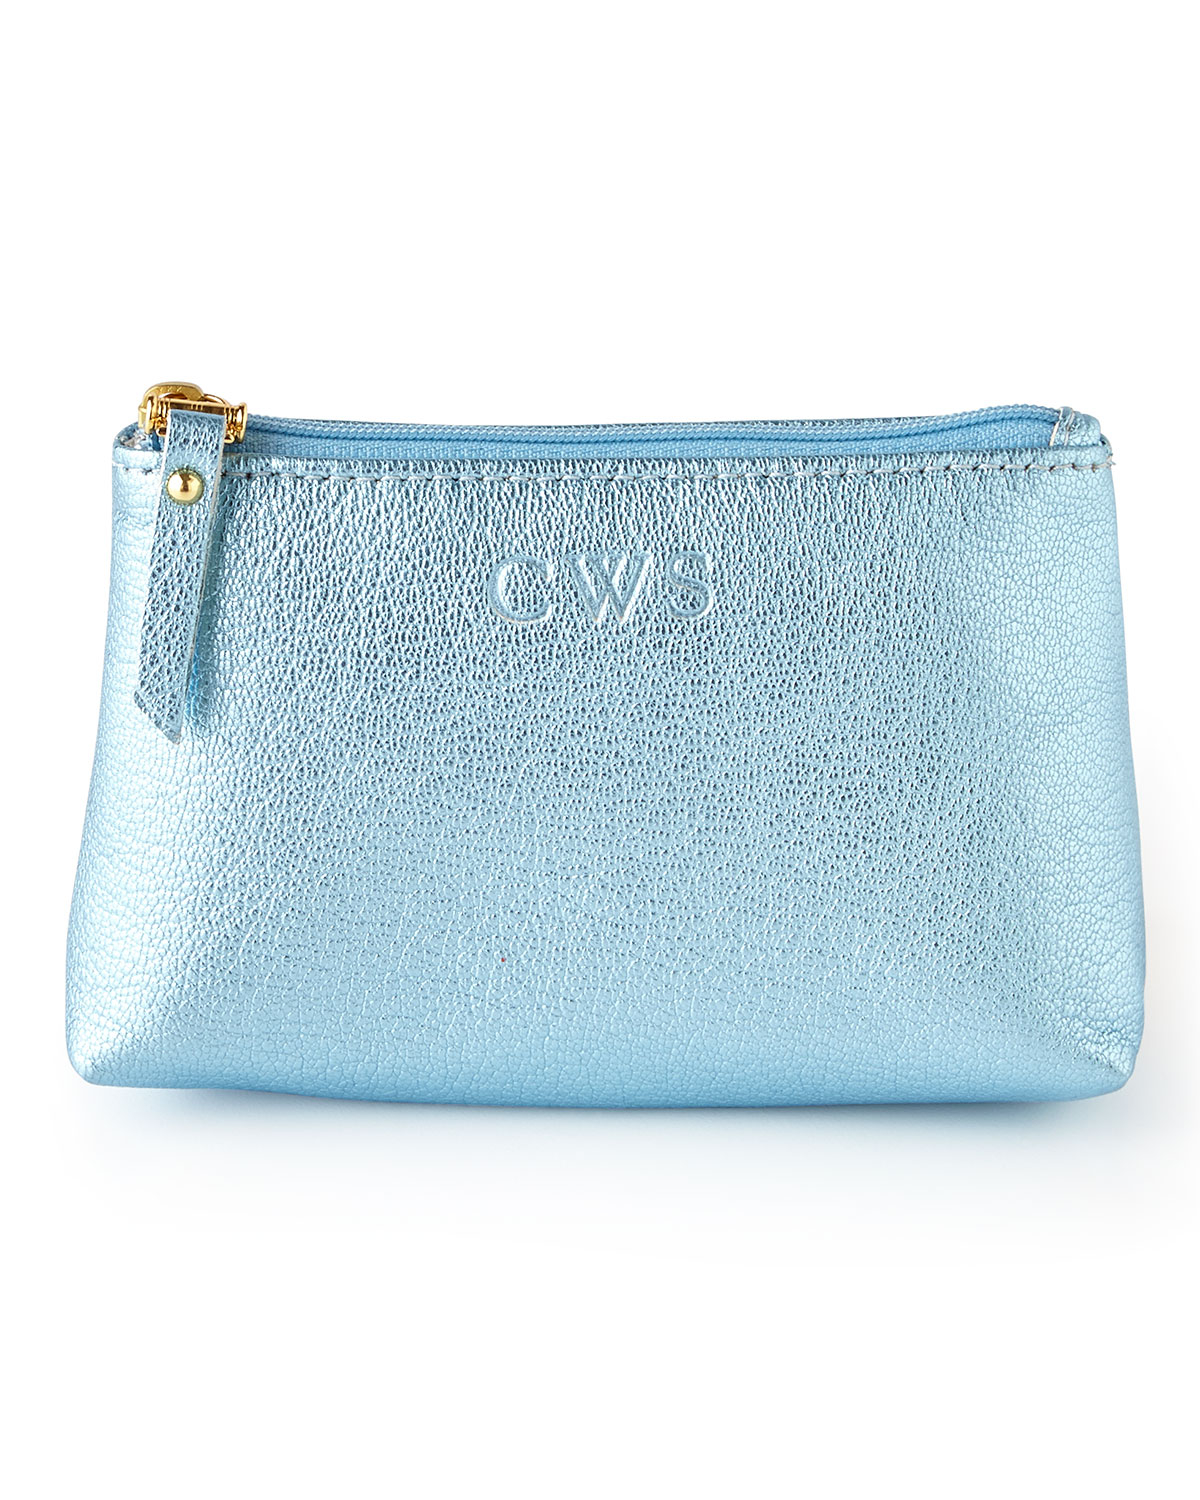 graphic image personalized metallic jewelry pouch in blue